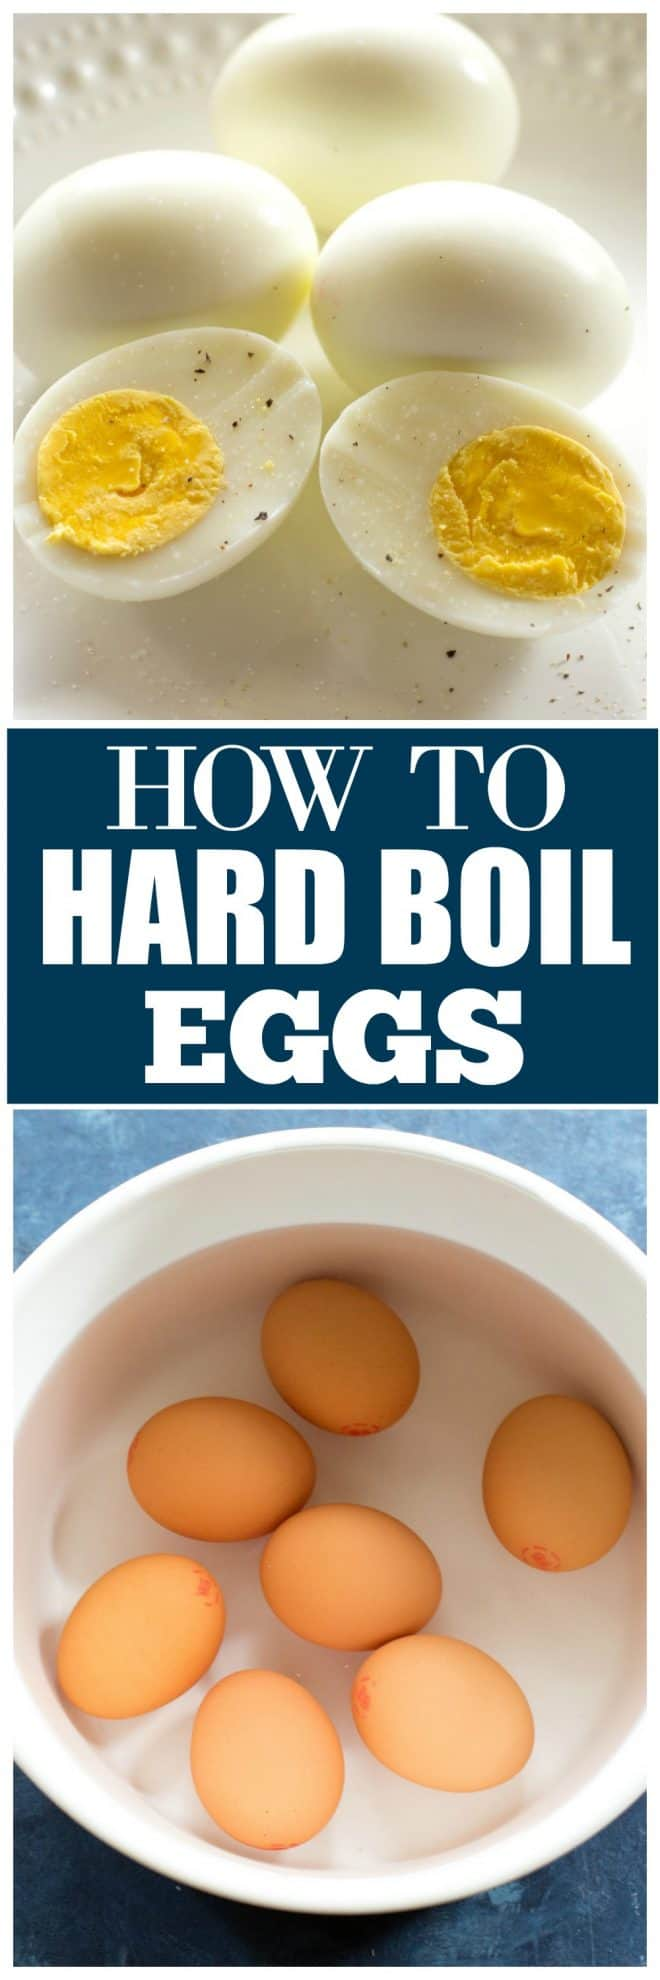 How to Hard Boil Eggs